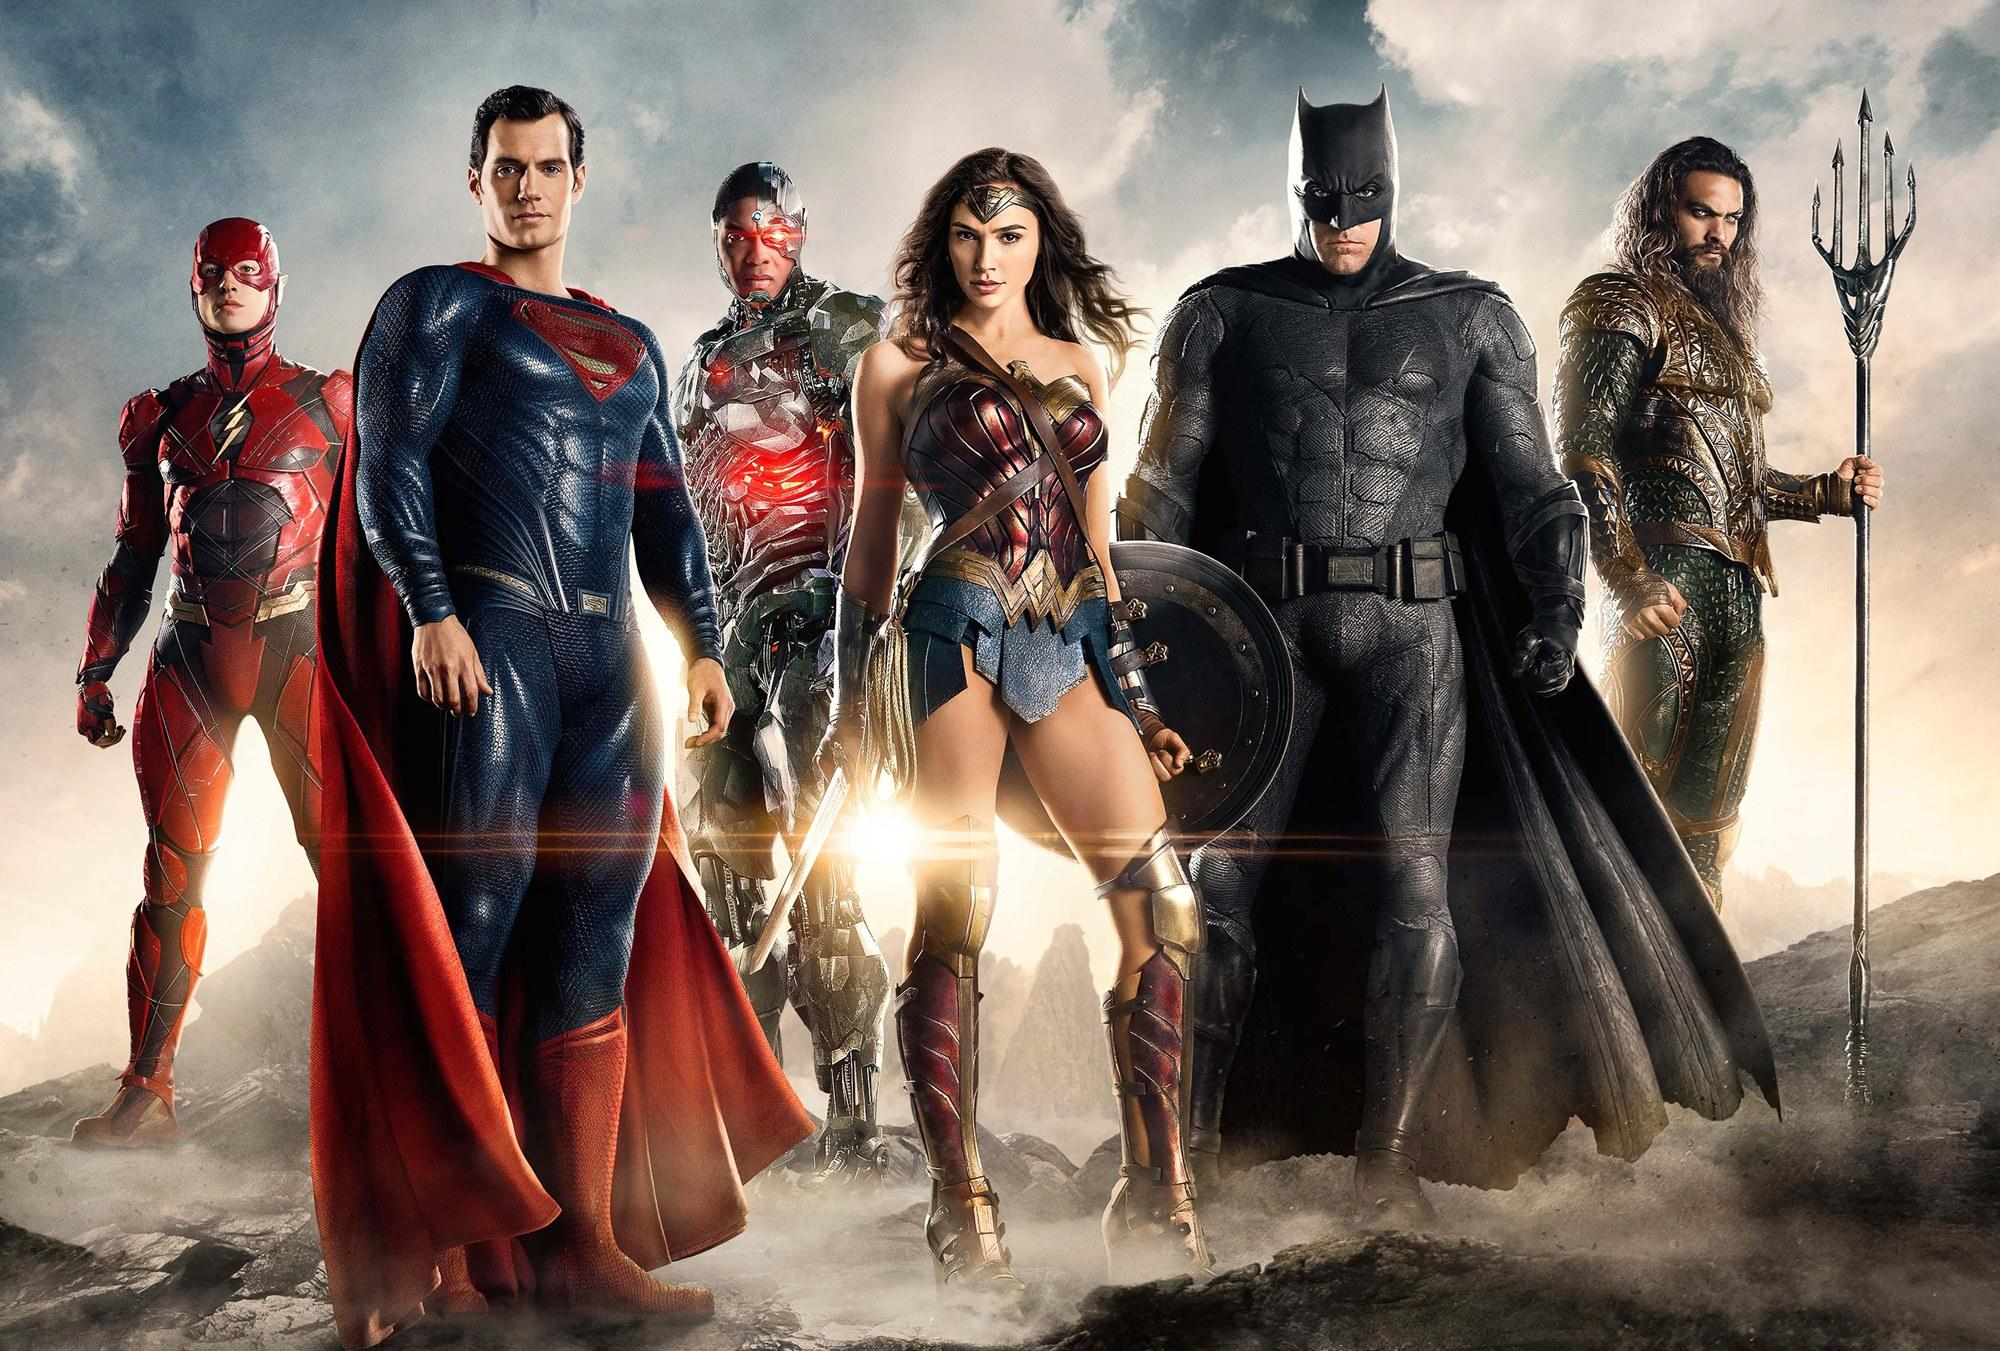 Why Are Justice League Actors Calling for the Release of the Mythical #SnyderCut? - Yahoo Lifestyle